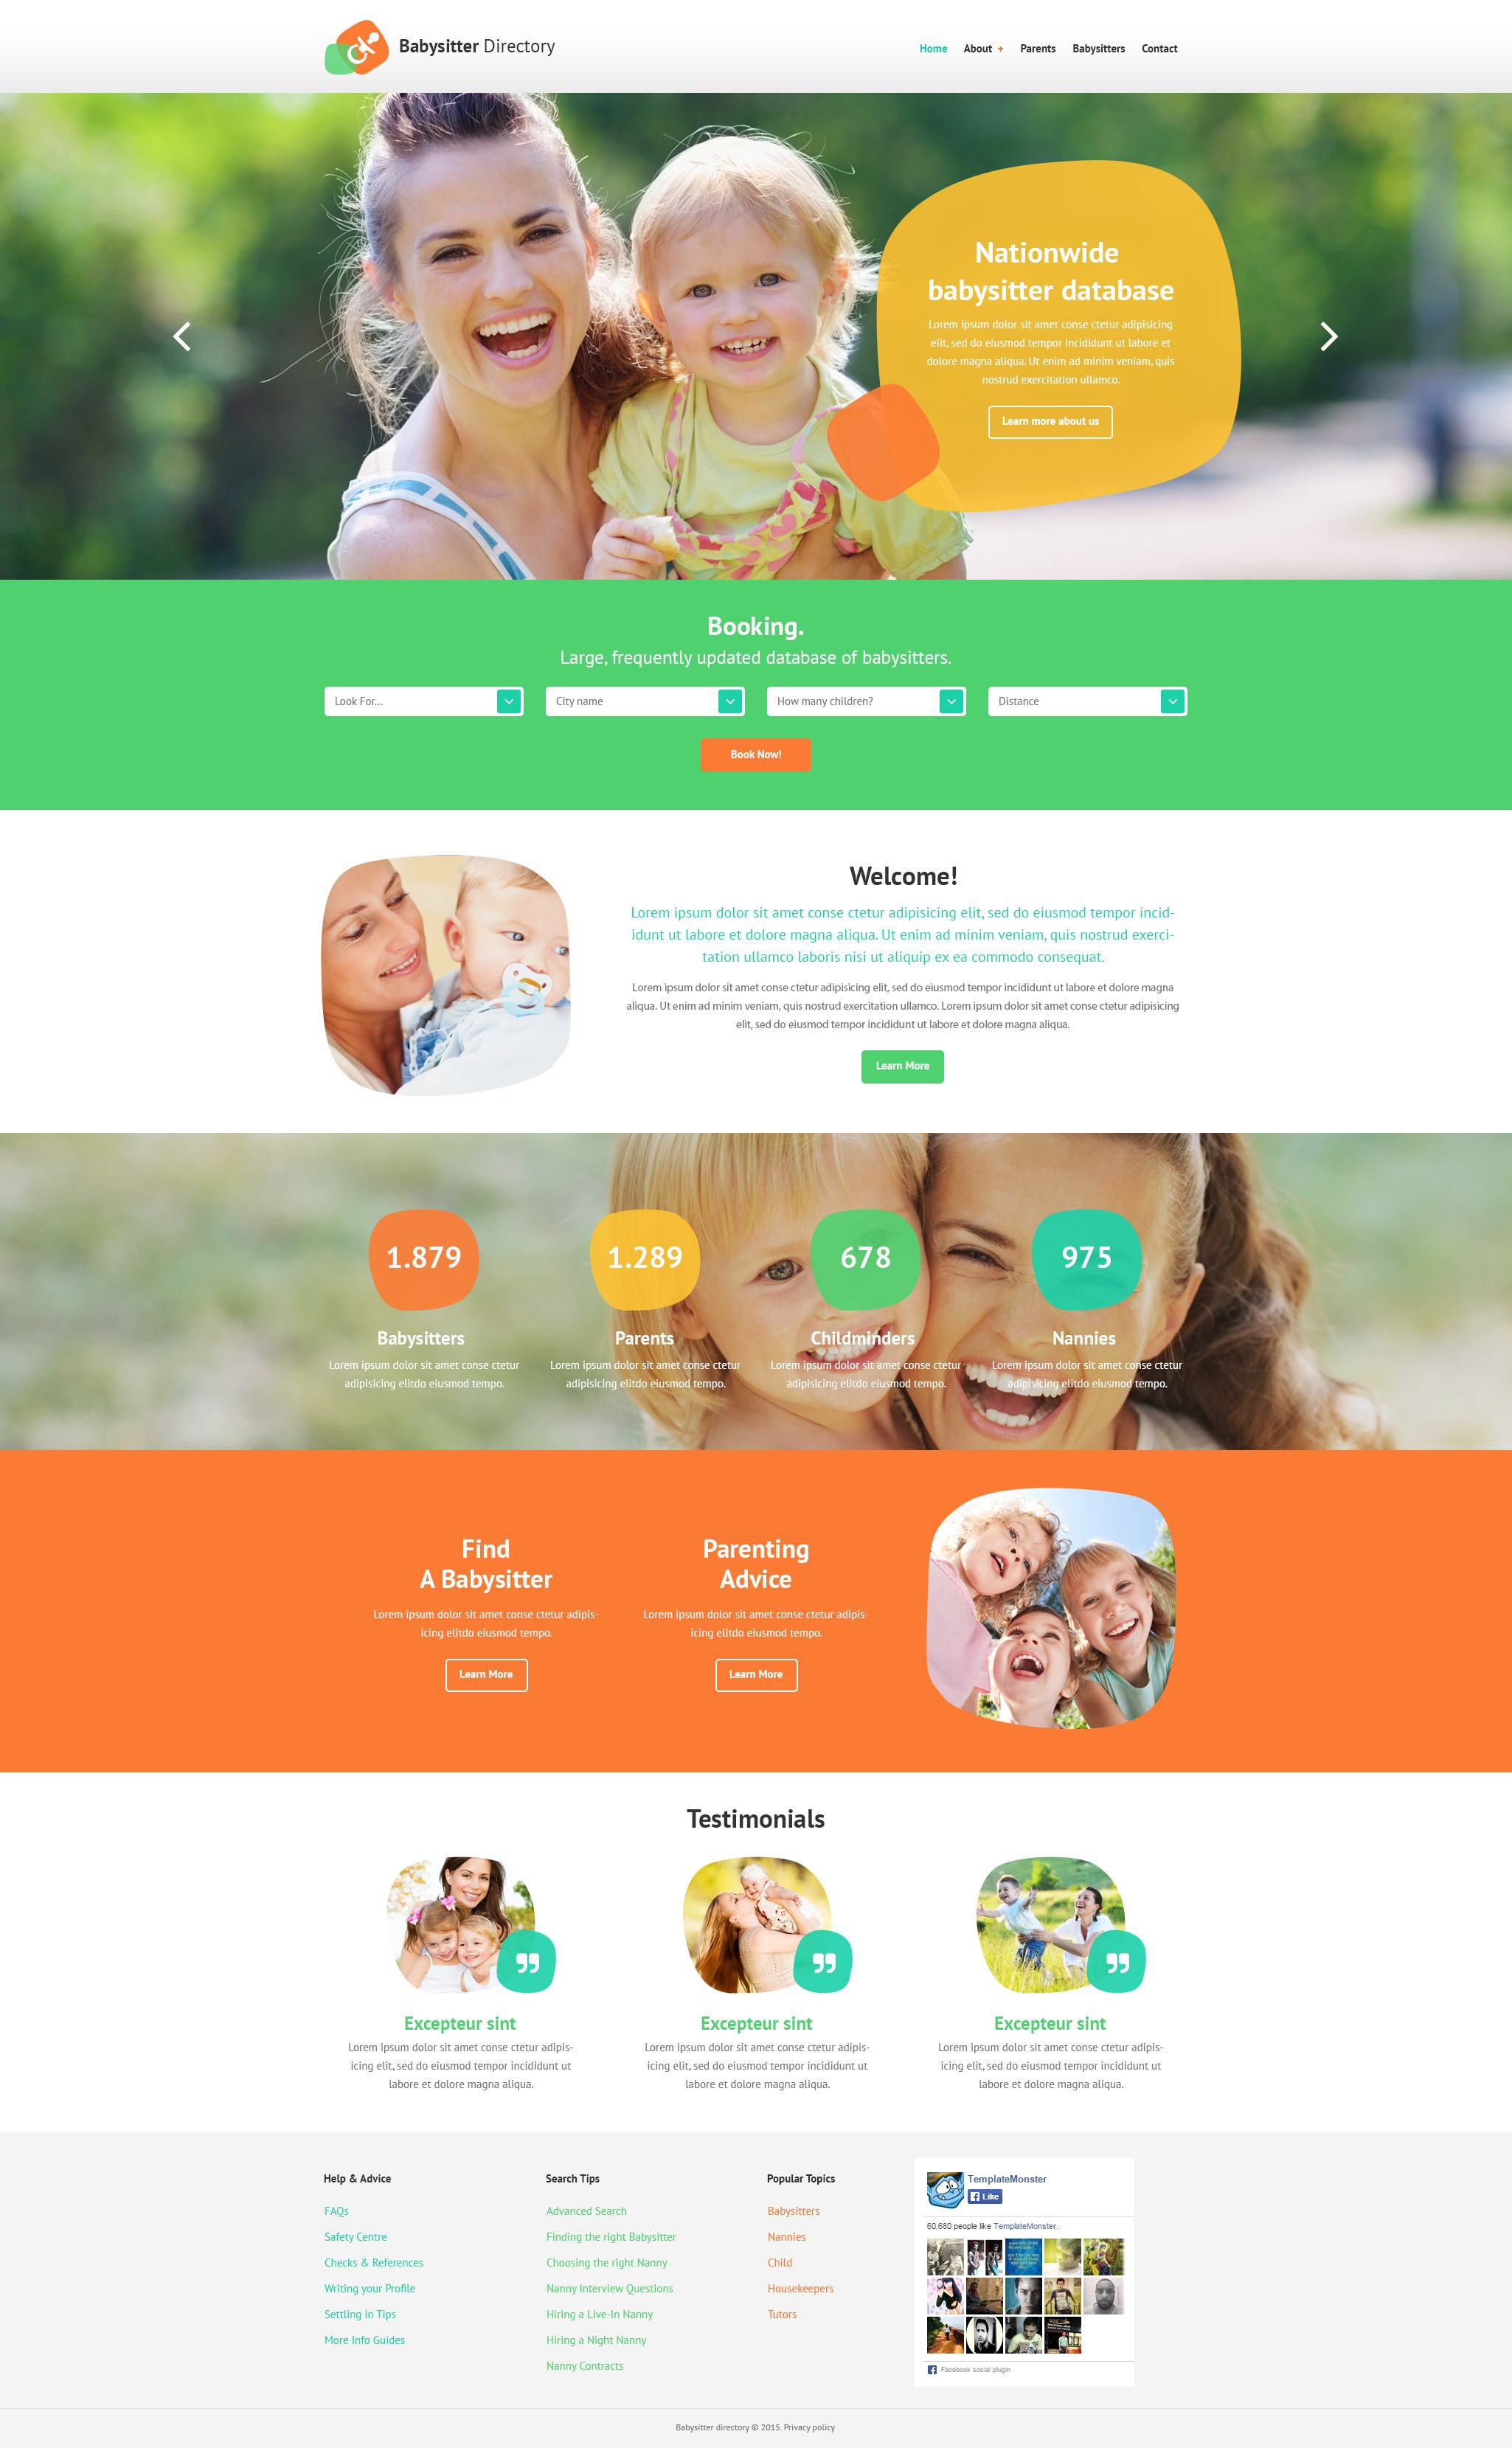 The Babysitter Nurse Responsive Javascript Animated Design 54546, one of the best website templates of its kind (family, most popular), also known as babysitter nurse website template, baby website template, children website template, child website template, kids website template, parents website template, family care website template, help website template, resume website template, services company website template, profile website template, prices website template, order website template, harmony website template, hearth website template, home website template, relationship website template, close care website template, happiness website template, education website template, youth website template, health website template, advices website template, event website template, entertainment website template, information website template, support website template, hom and related with babysitter nurse, baby, children, child, kids, parents, family care, help, resume, services company, profile, prices, order, harmony, hearth, home, relationship, close care, happiness, education, youth, health, advices, event, entertainment, information, support, hom, etc.